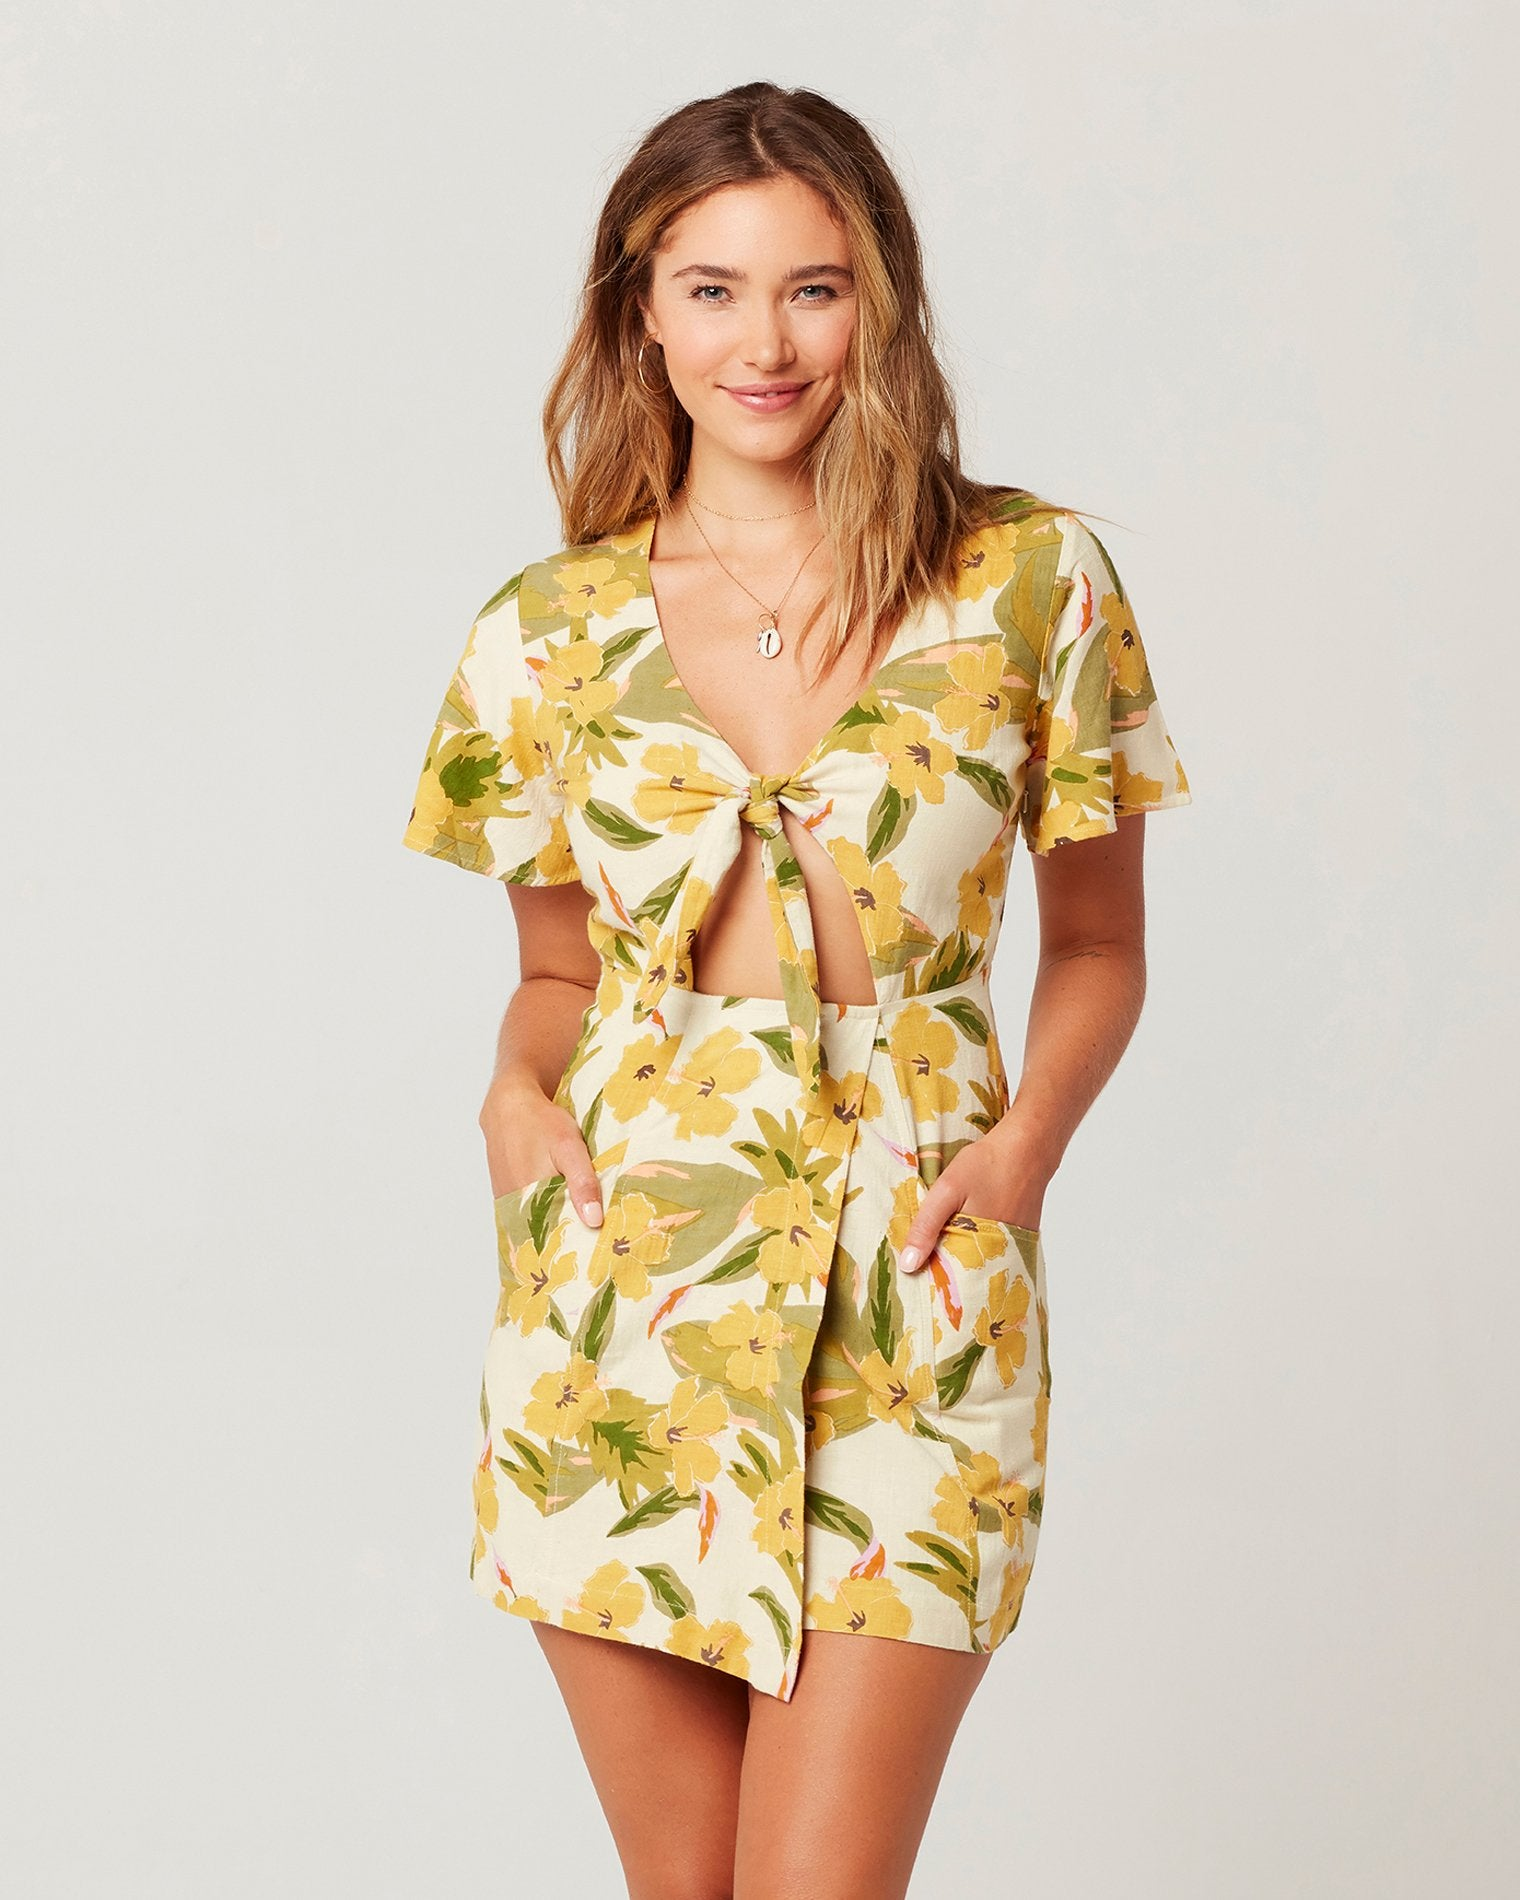 Ibiza Floral | Model: Chanel (size: M)